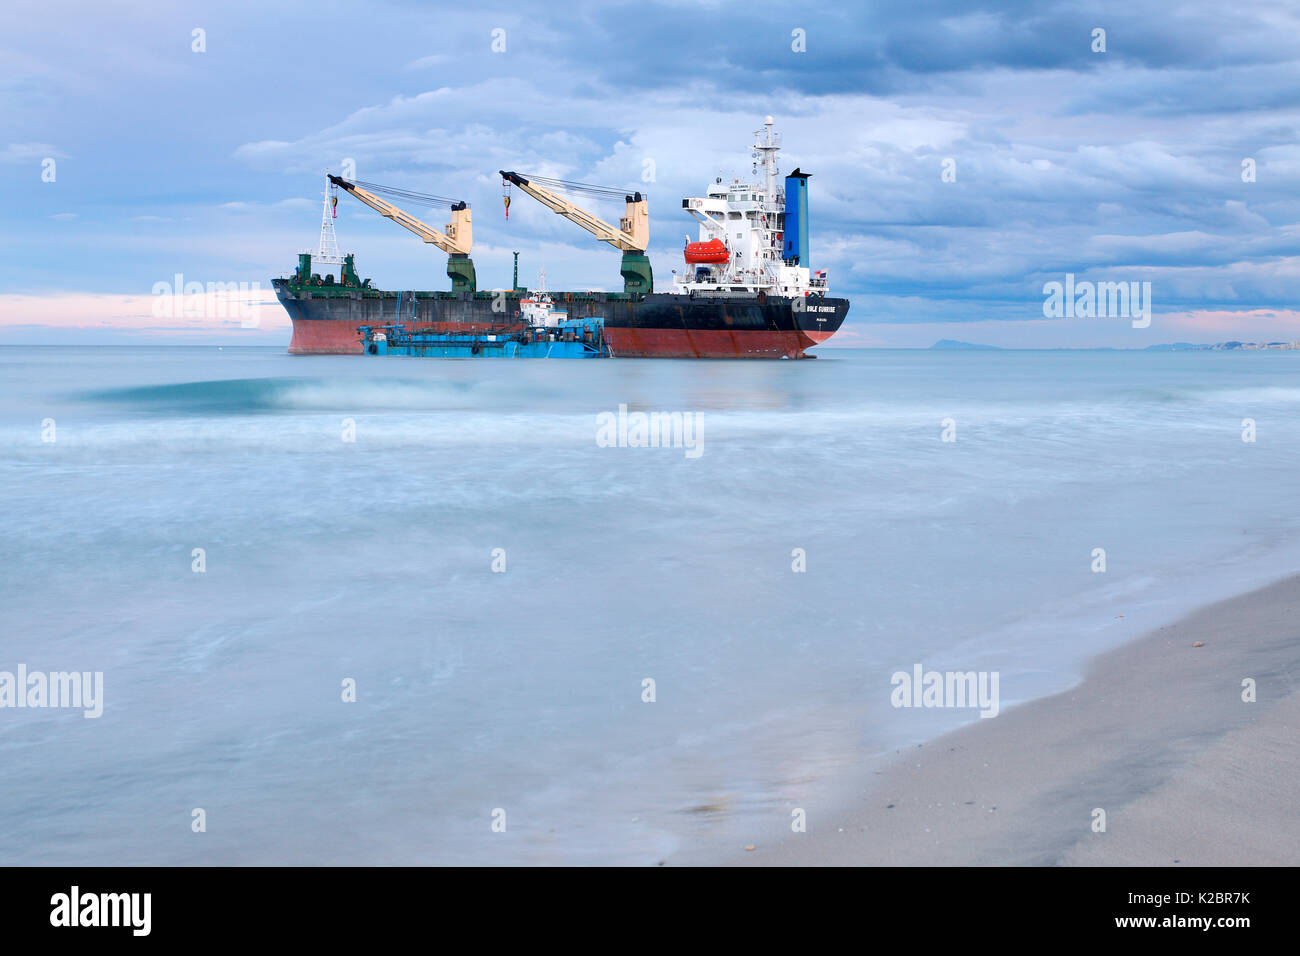 Container ship stranded on El Saler Beach, Valencia, Spain. All non-editorial uses must be cleared individually. - Stock Image